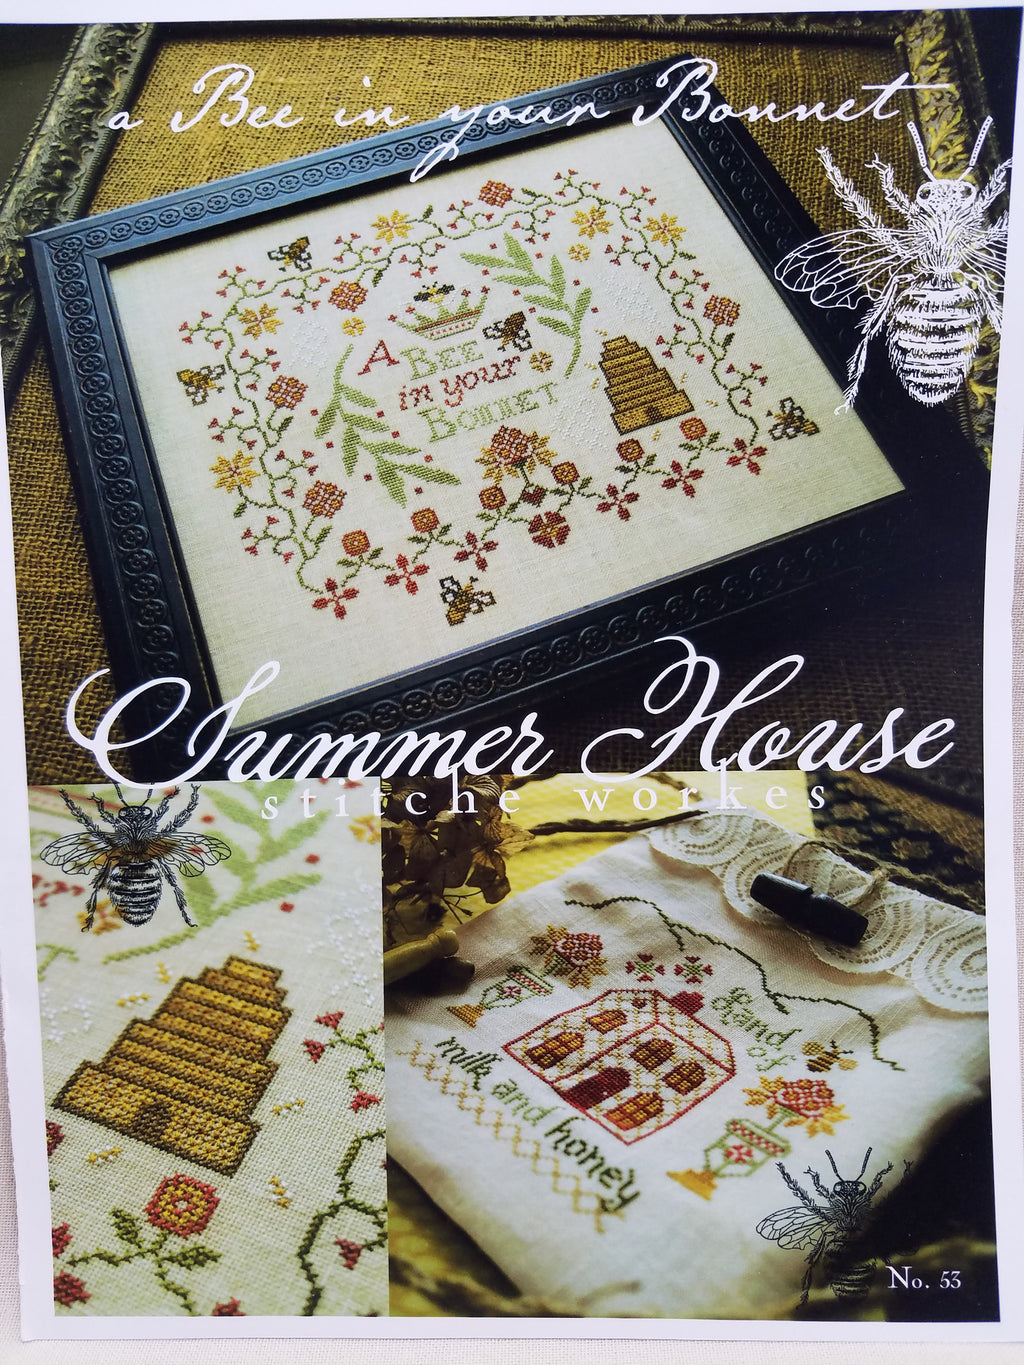 BEE IN YOUR BONNET ~  Summer House Stitche Workes